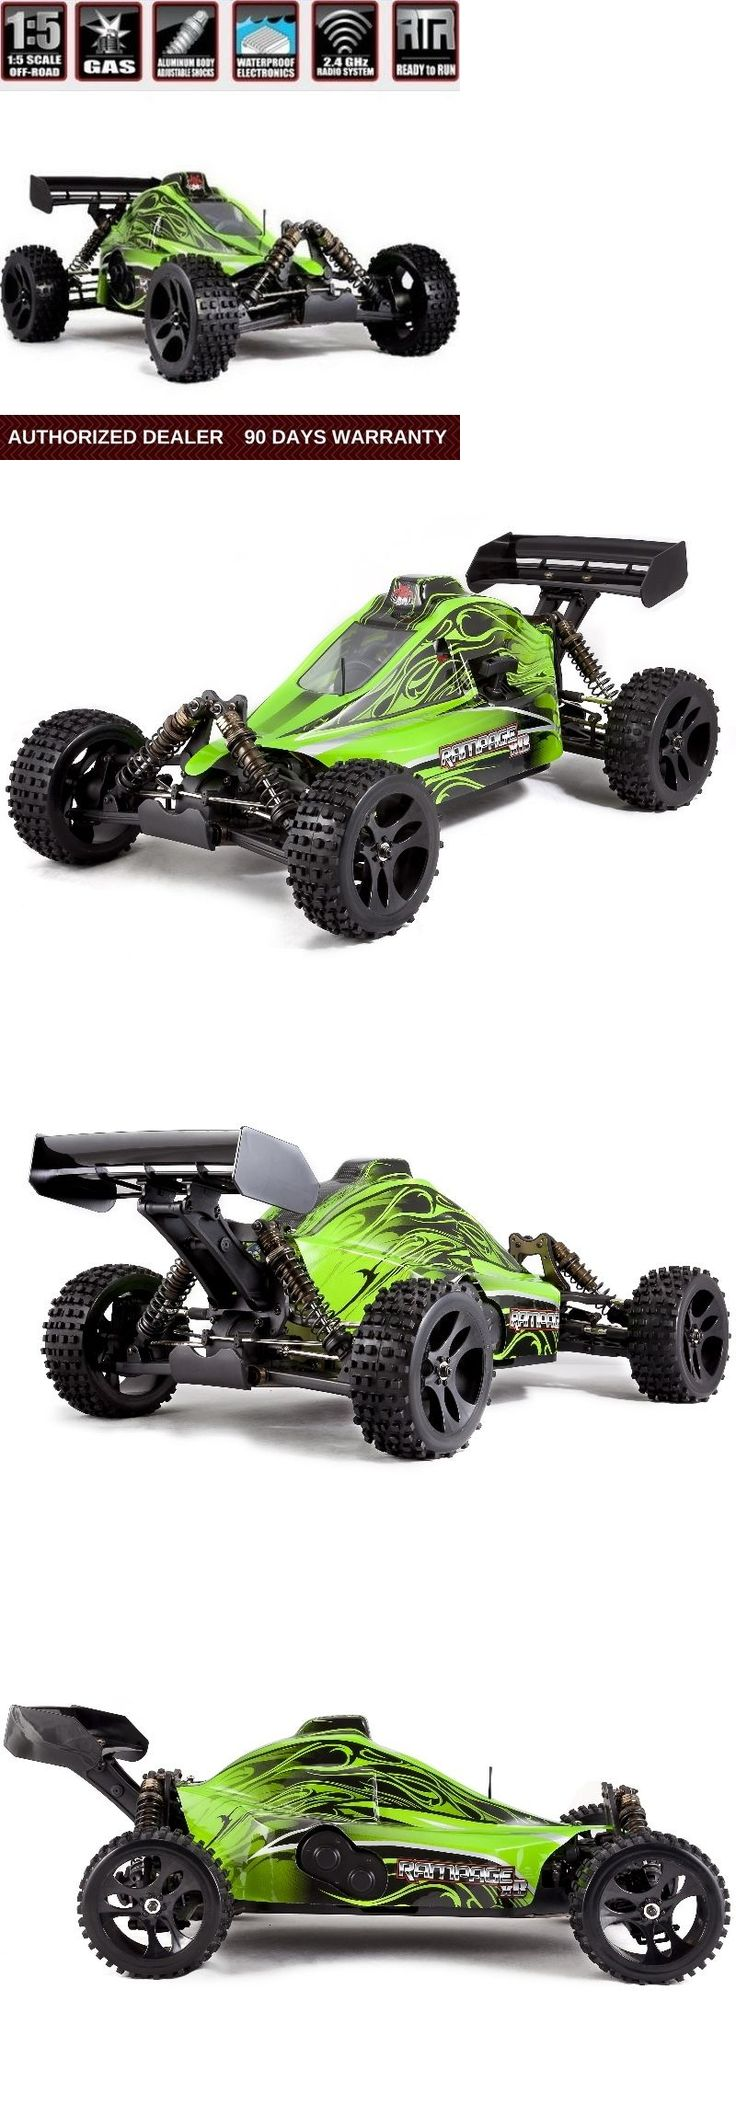 Cars Trucks and Motorcycles 182183: Redcat Racing Rampage Xb Rc Truck 1 5 Scale Gas 2.4Ghz Remote Control Green Body -> BUY IT NOW ONLY: $559.99 on eBay!